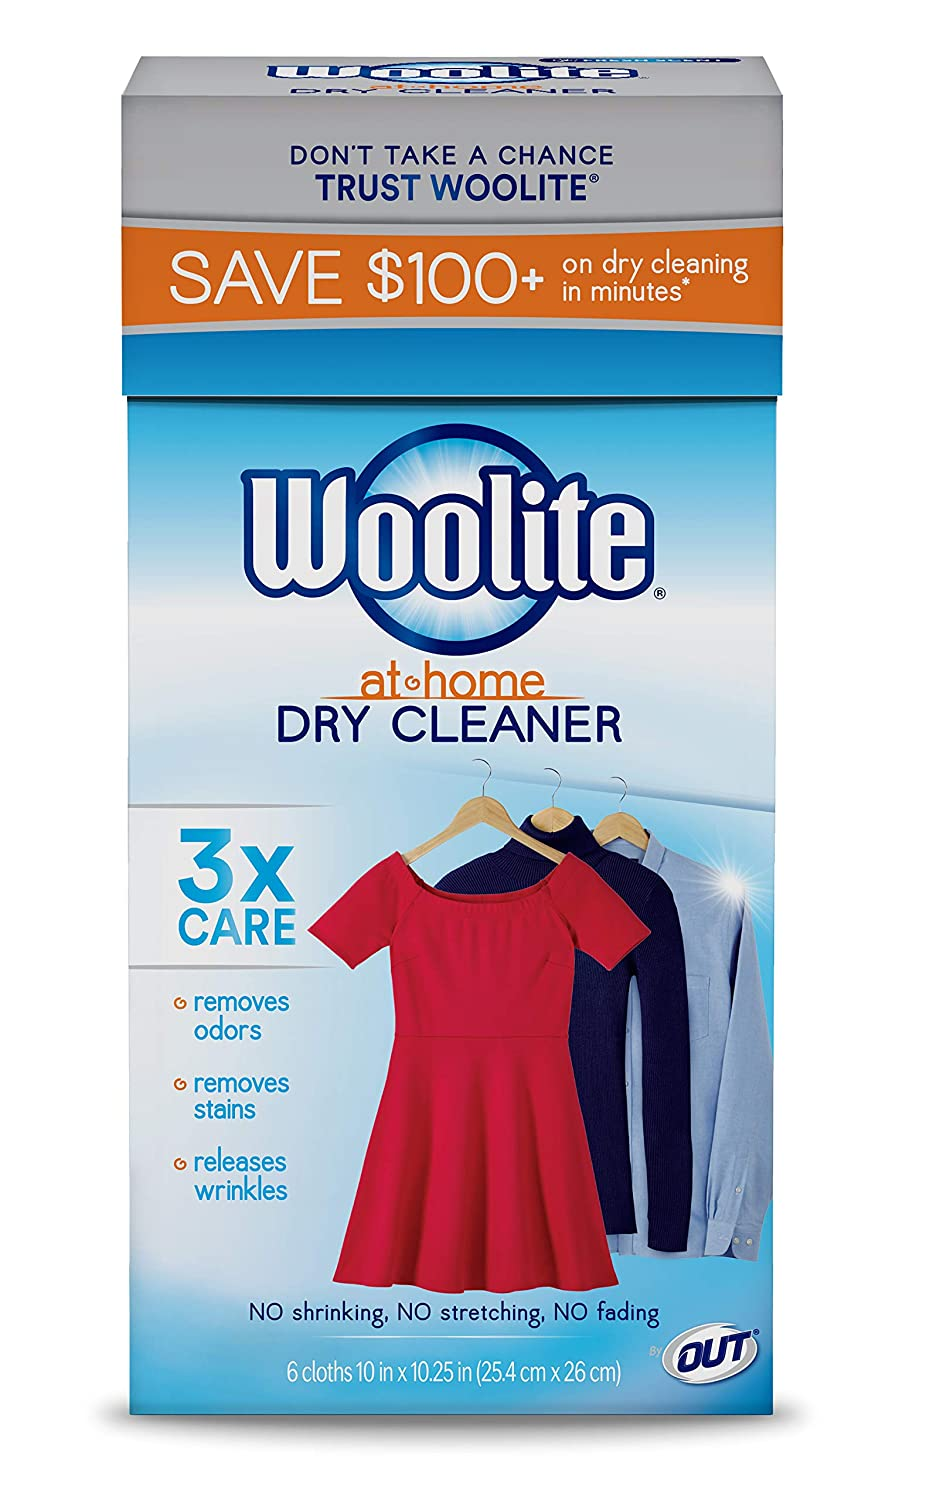 (24 Cloths, Fresh Scent) - Woolite At Home Dry Cleaner, Fresh Scent, 4 Pack, 24 Cloths B00U62ZE80 Fresh Scent 24 Cloths